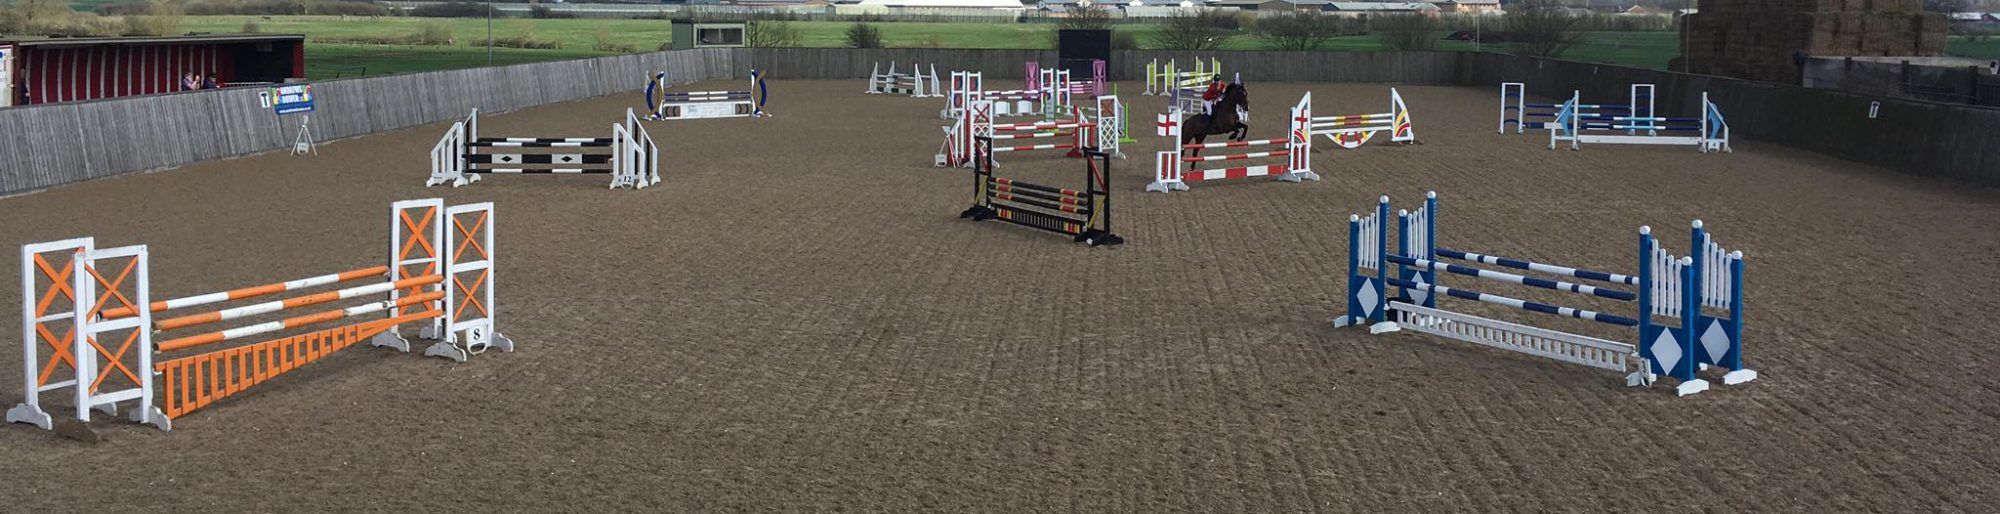 Onley Grounds Equestrian Complex Rugby Warwickshire